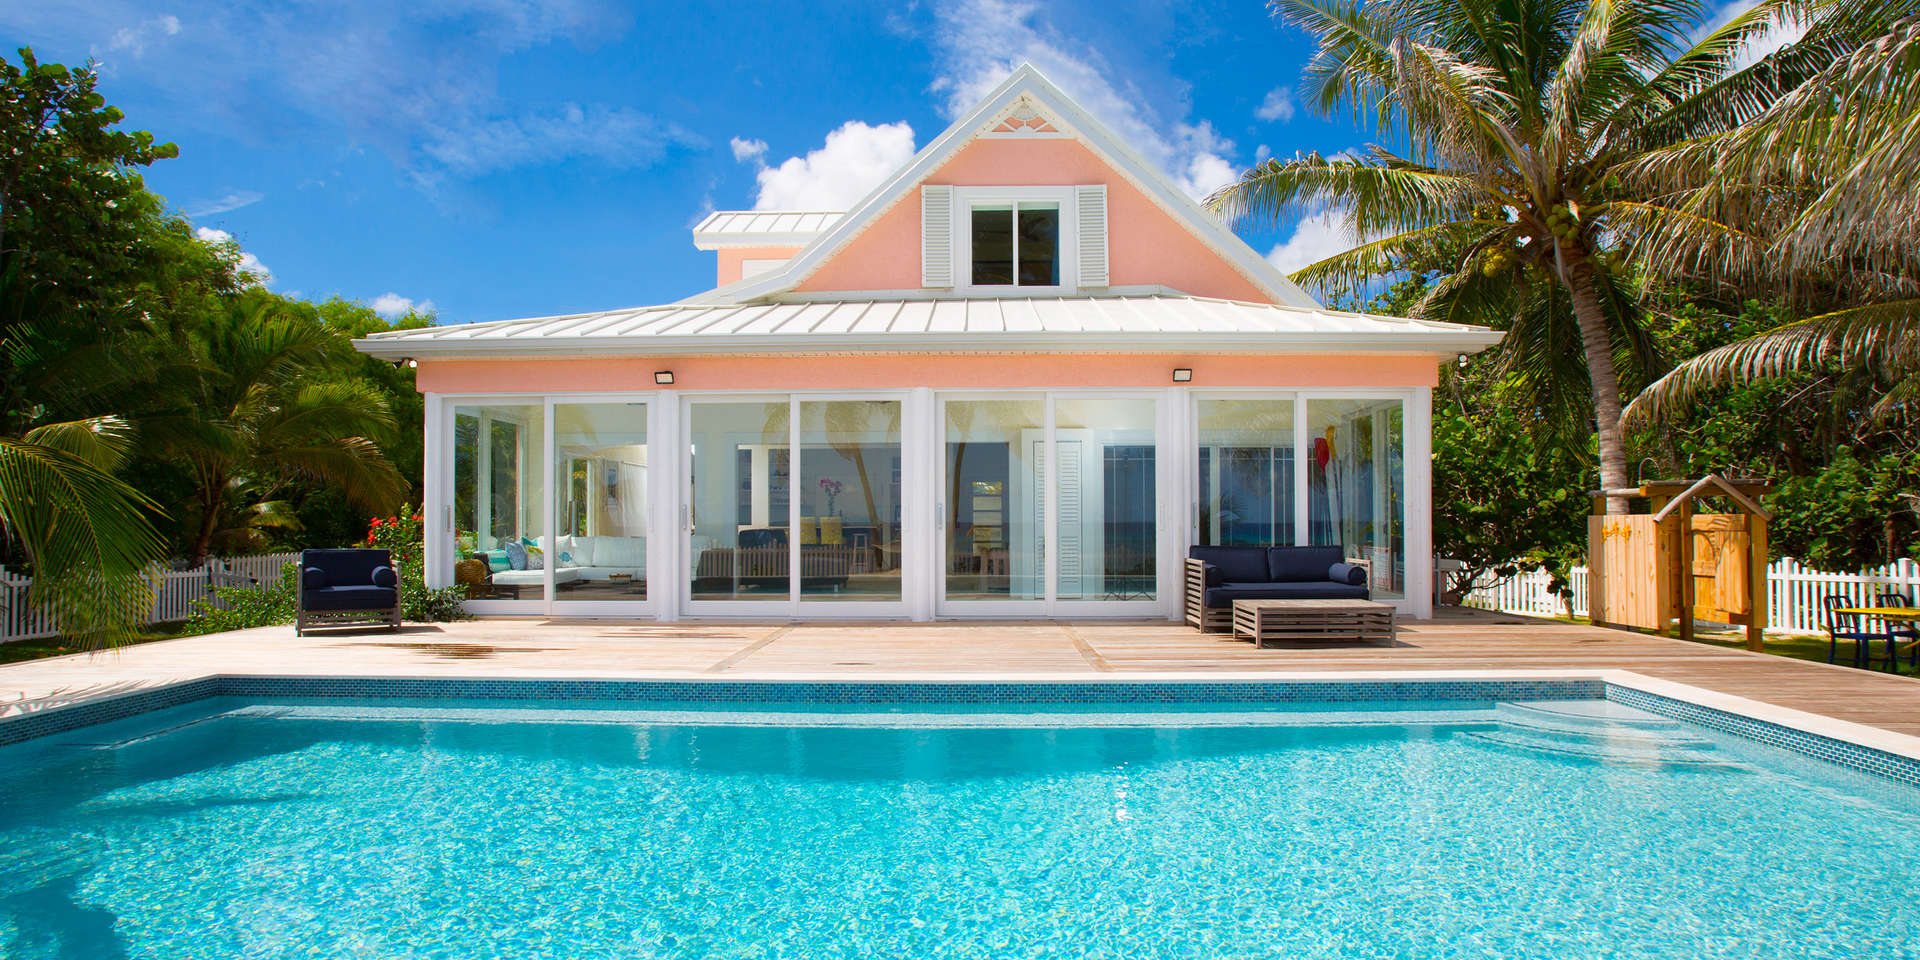 Luxury villa rentals caribbean - Cayman islands - Grand cayman - North side - Babylon Reef - Image 1/16